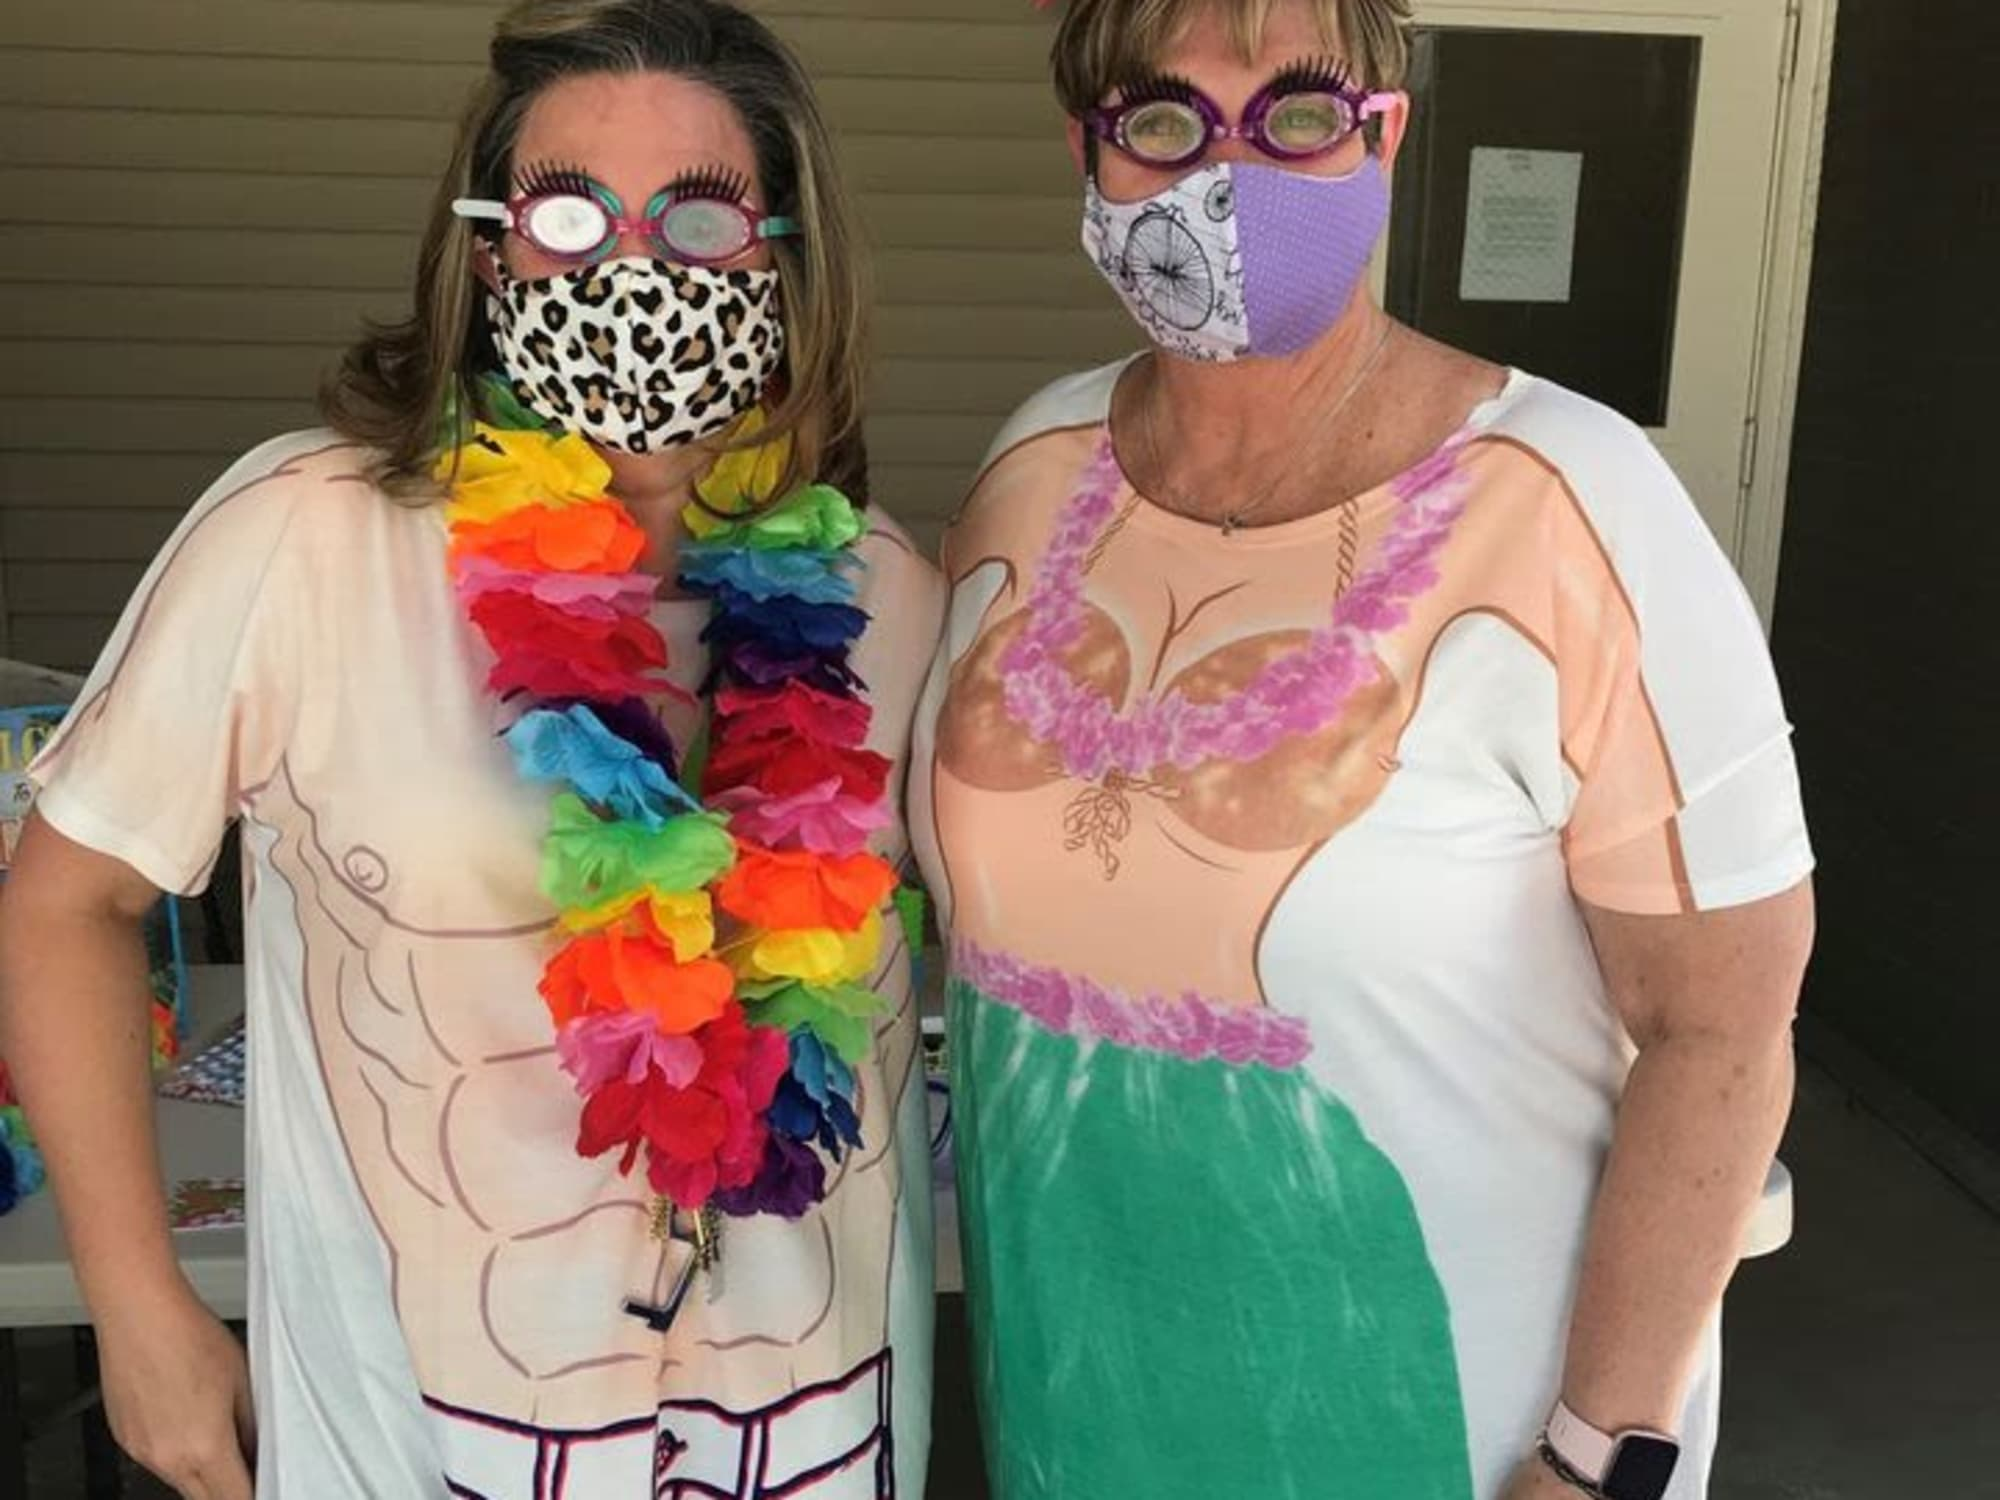 A couple residents dressed up at Cottonwood Creek in Salt Lake City, UT